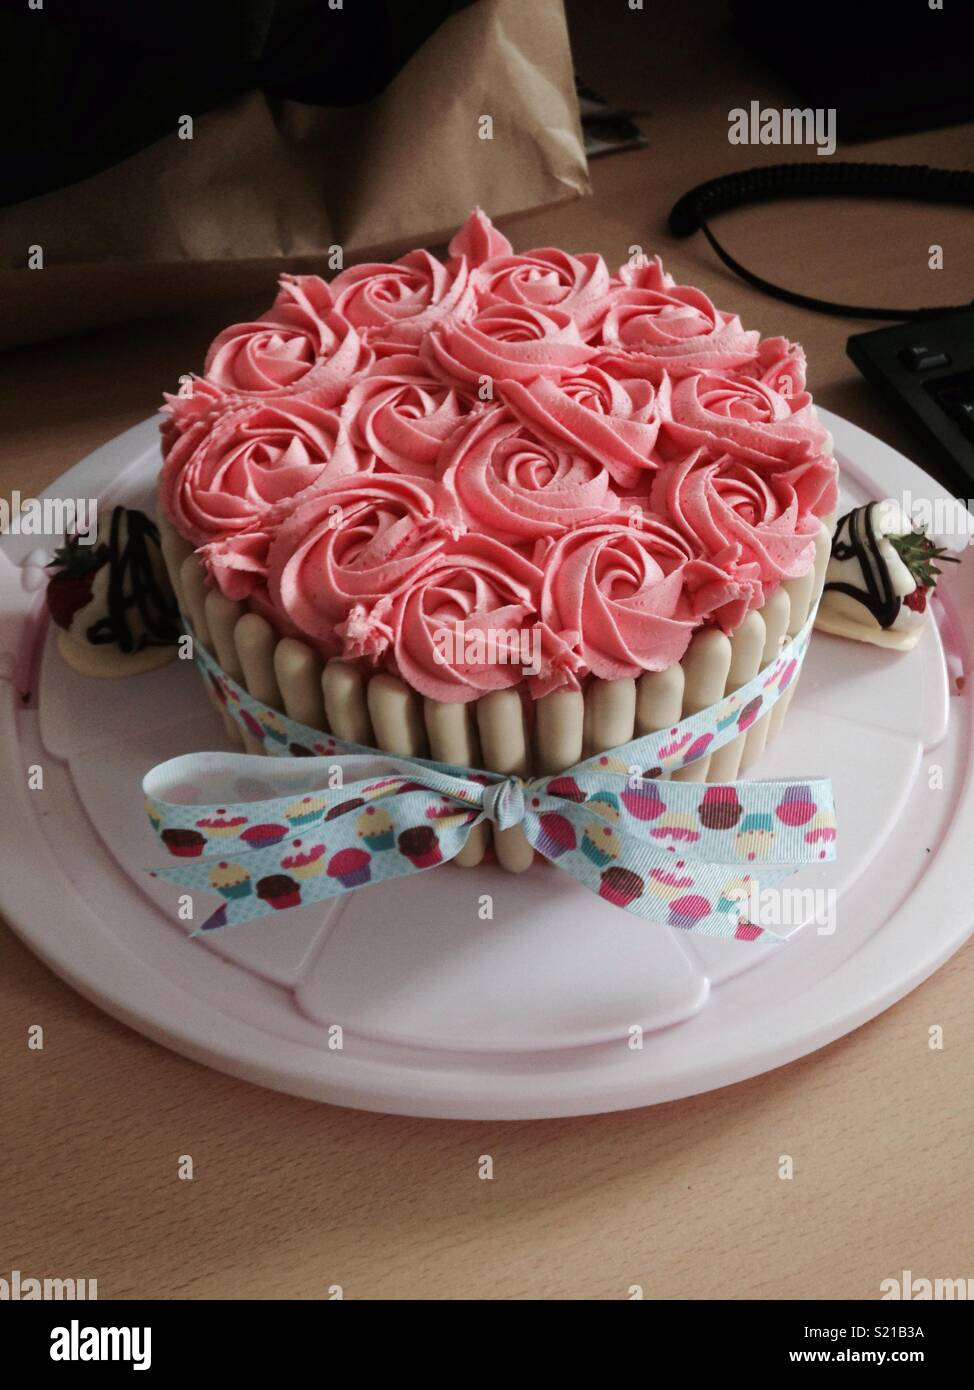 Swell Birthday Cake With Buttercream Rose Piping Stock Photo 311046606 Personalised Birthday Cards Veneteletsinfo